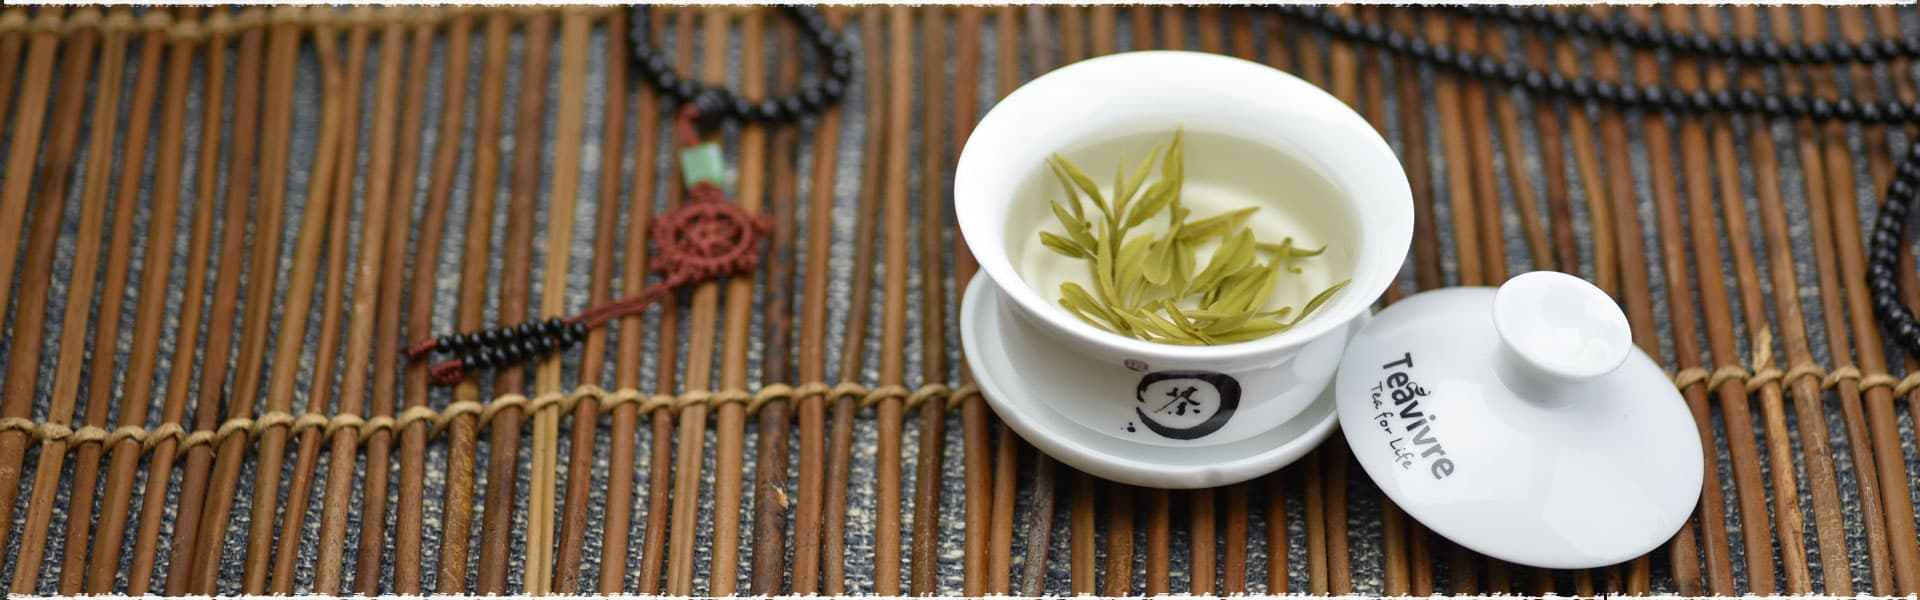 Free Teavivre Gaiwan along with your order on International Labor Day